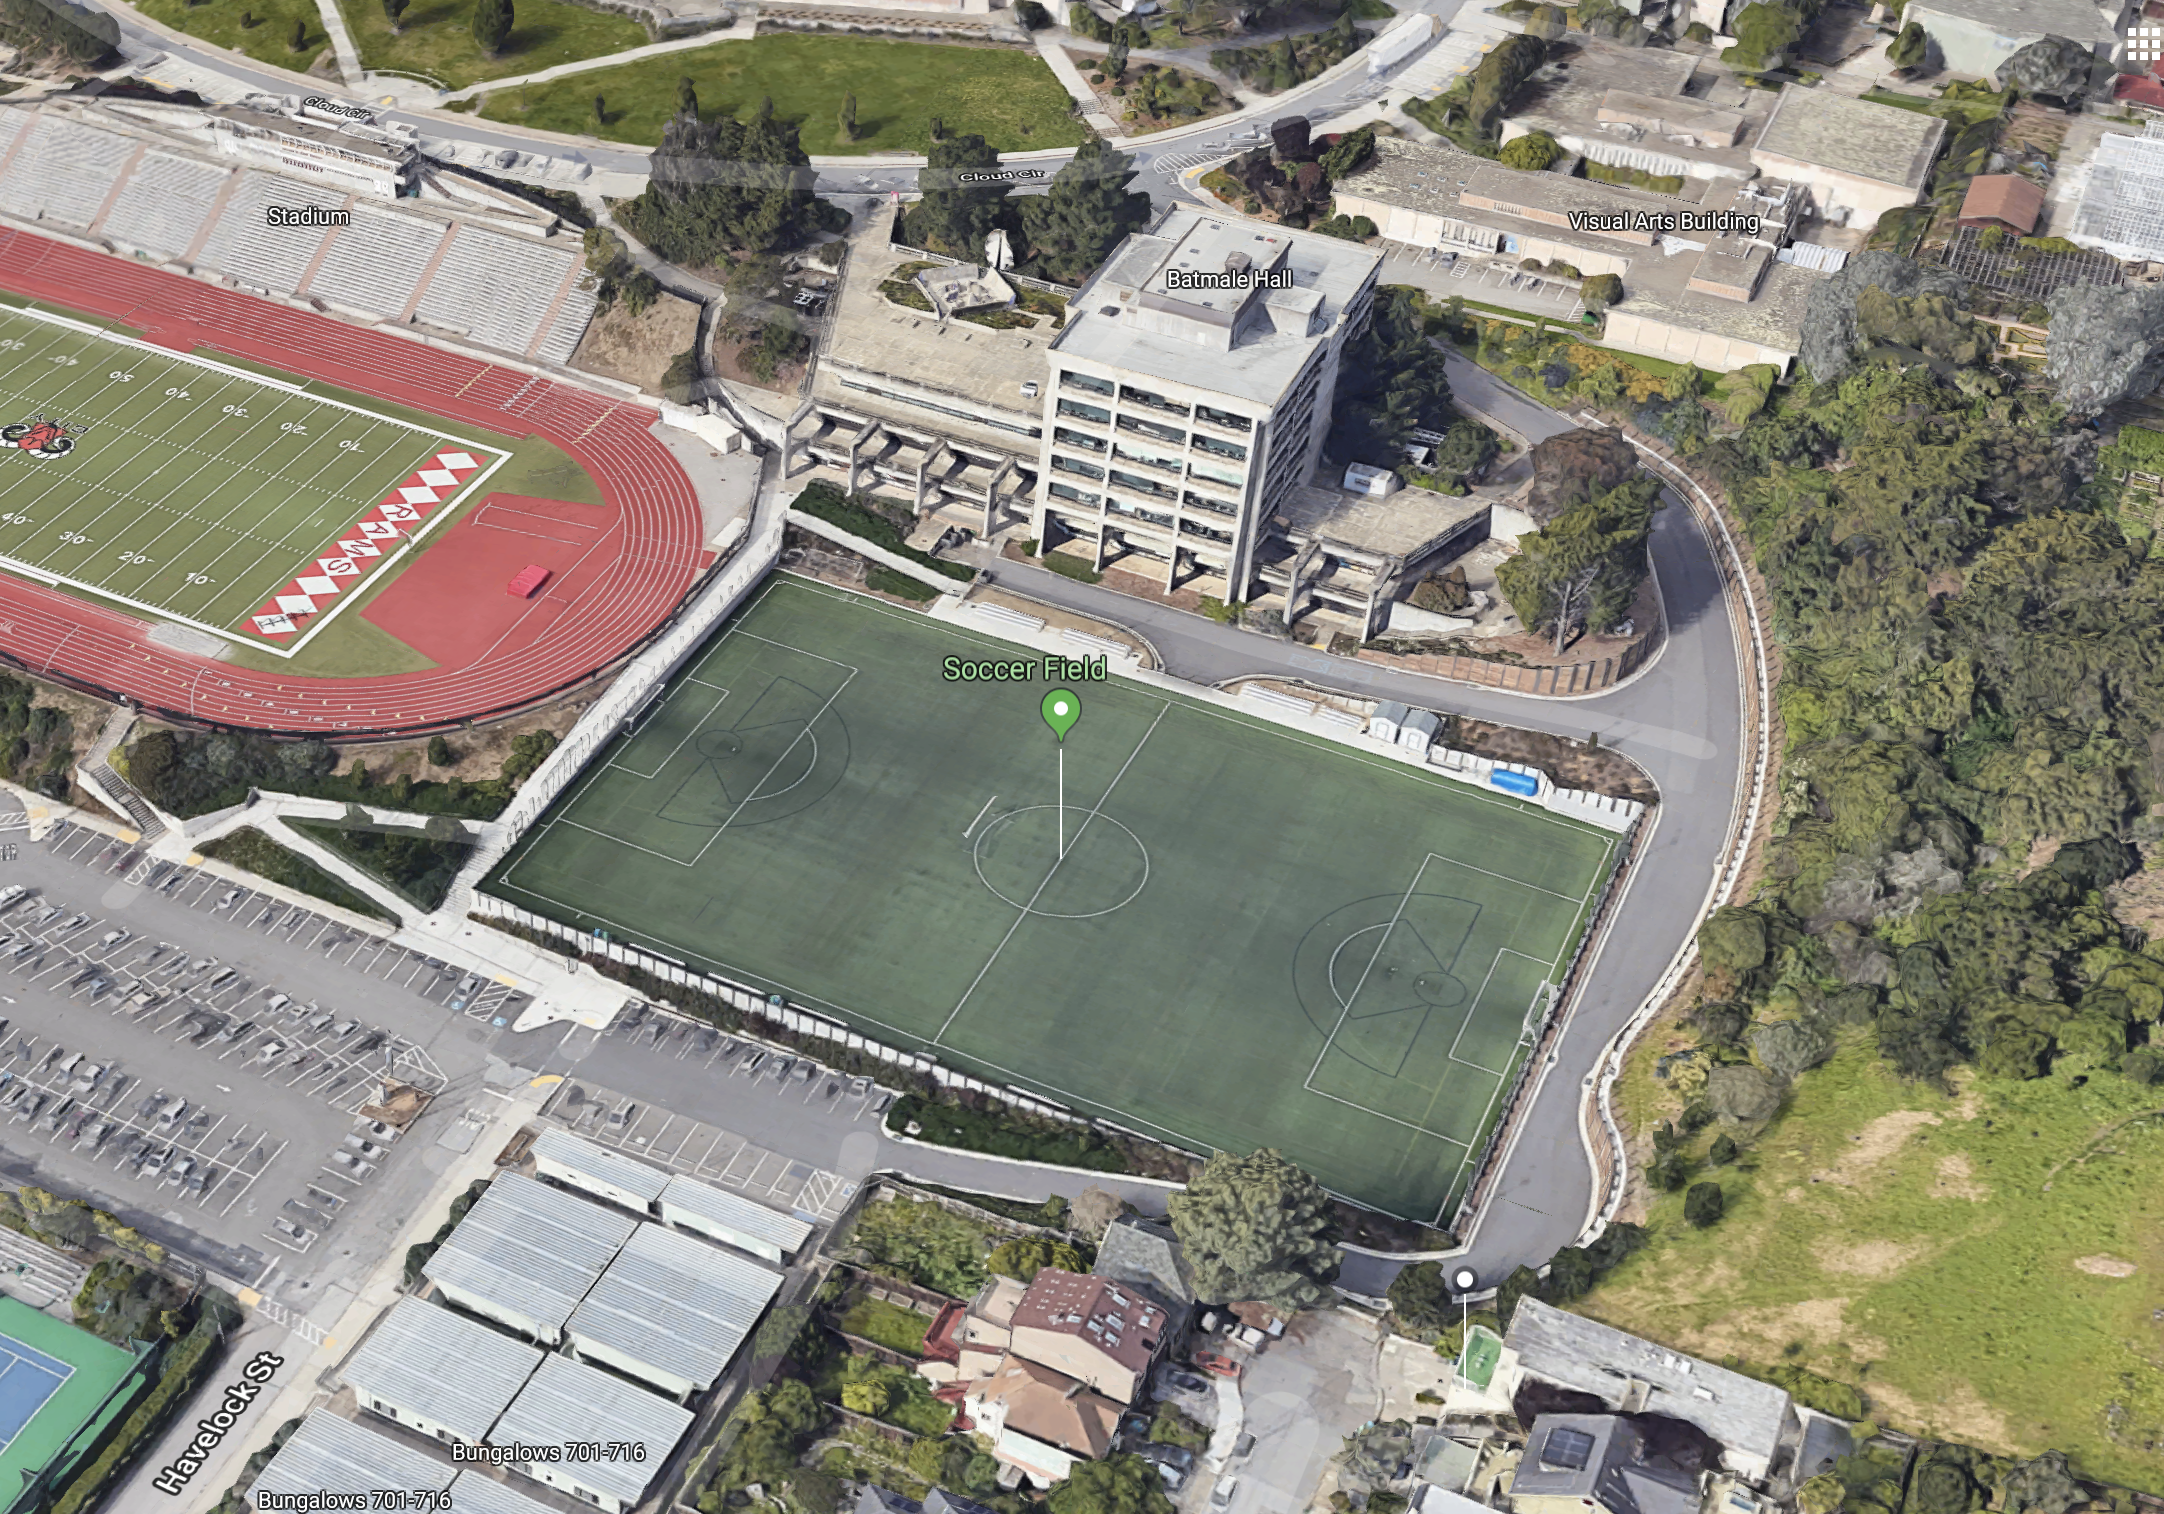 Aerial view of Soccer Field at CCSF via Google Maps.